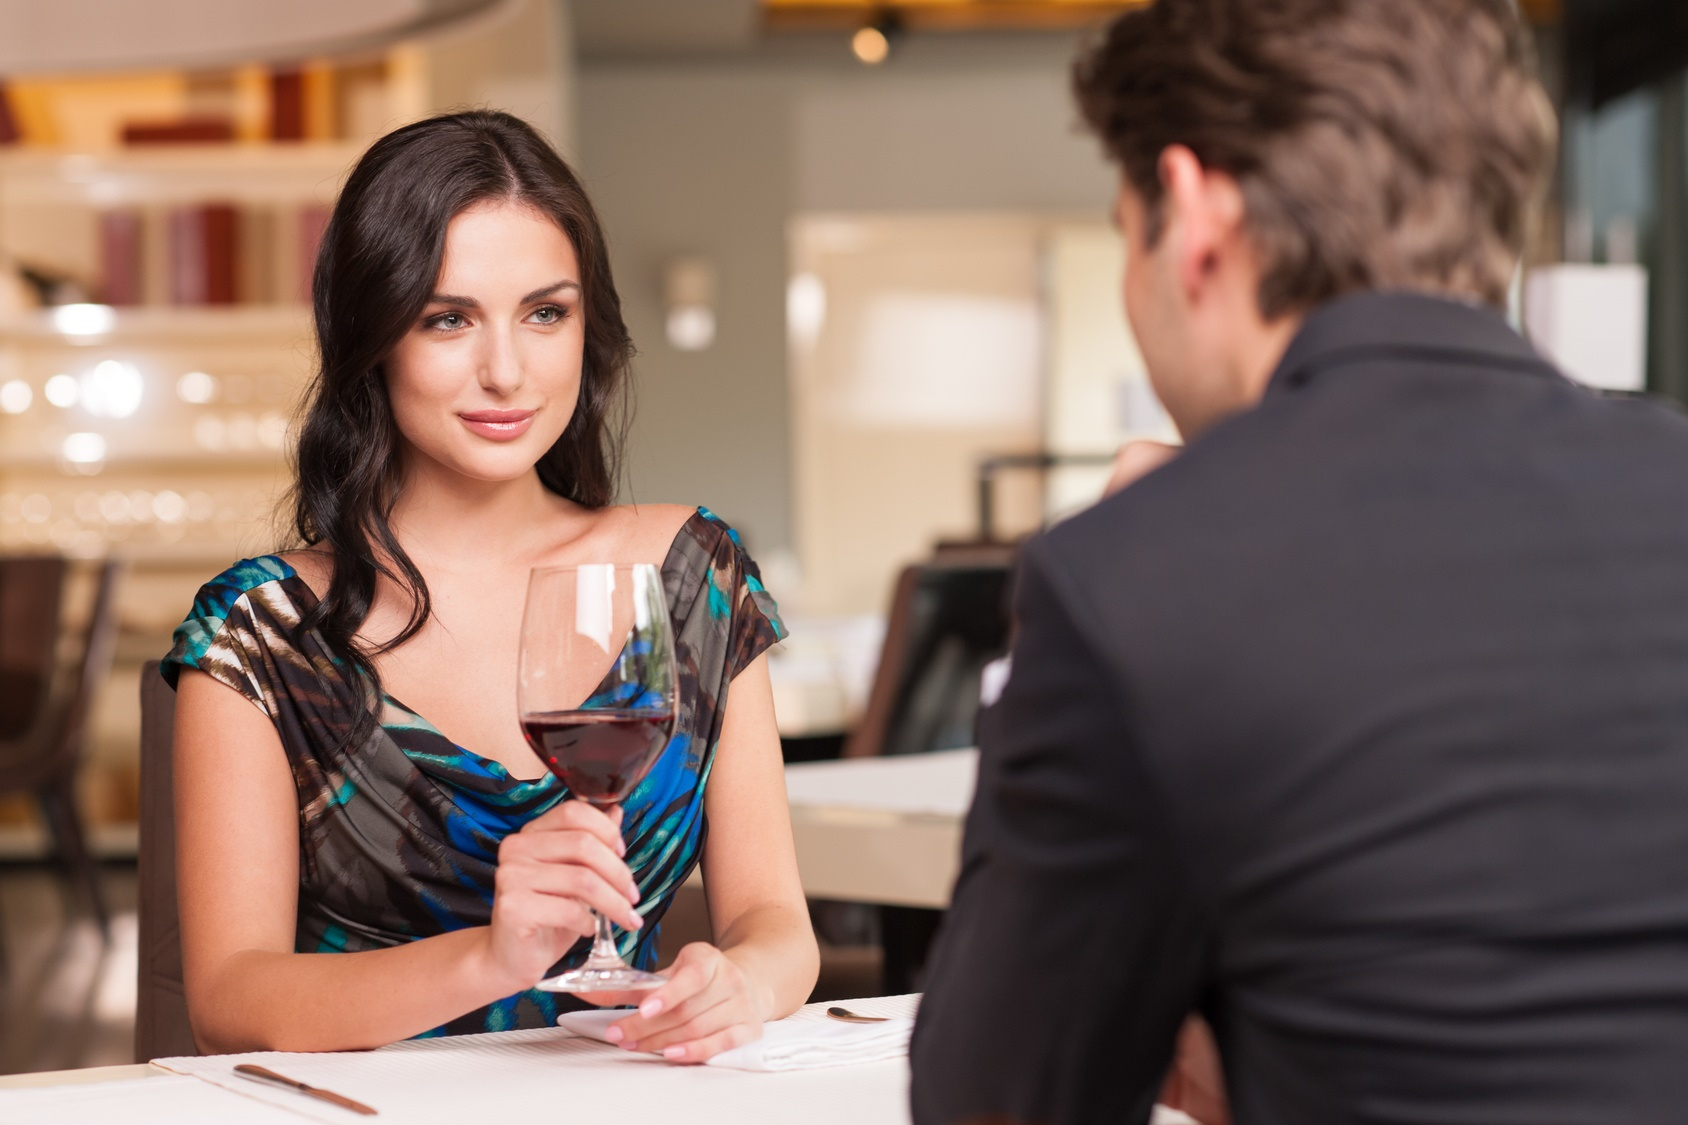 dating with girl means Dating is a stage of romantic relationships in humans whereby two people meet socially with the aim of each assessing the other's suitability as a prospective partner in an intimate relationship or marriageit is a form of courtship, consisting of social activities done by the couple, either alone or with others the protocols and practices of dating, and the terms used to describe it, vary.